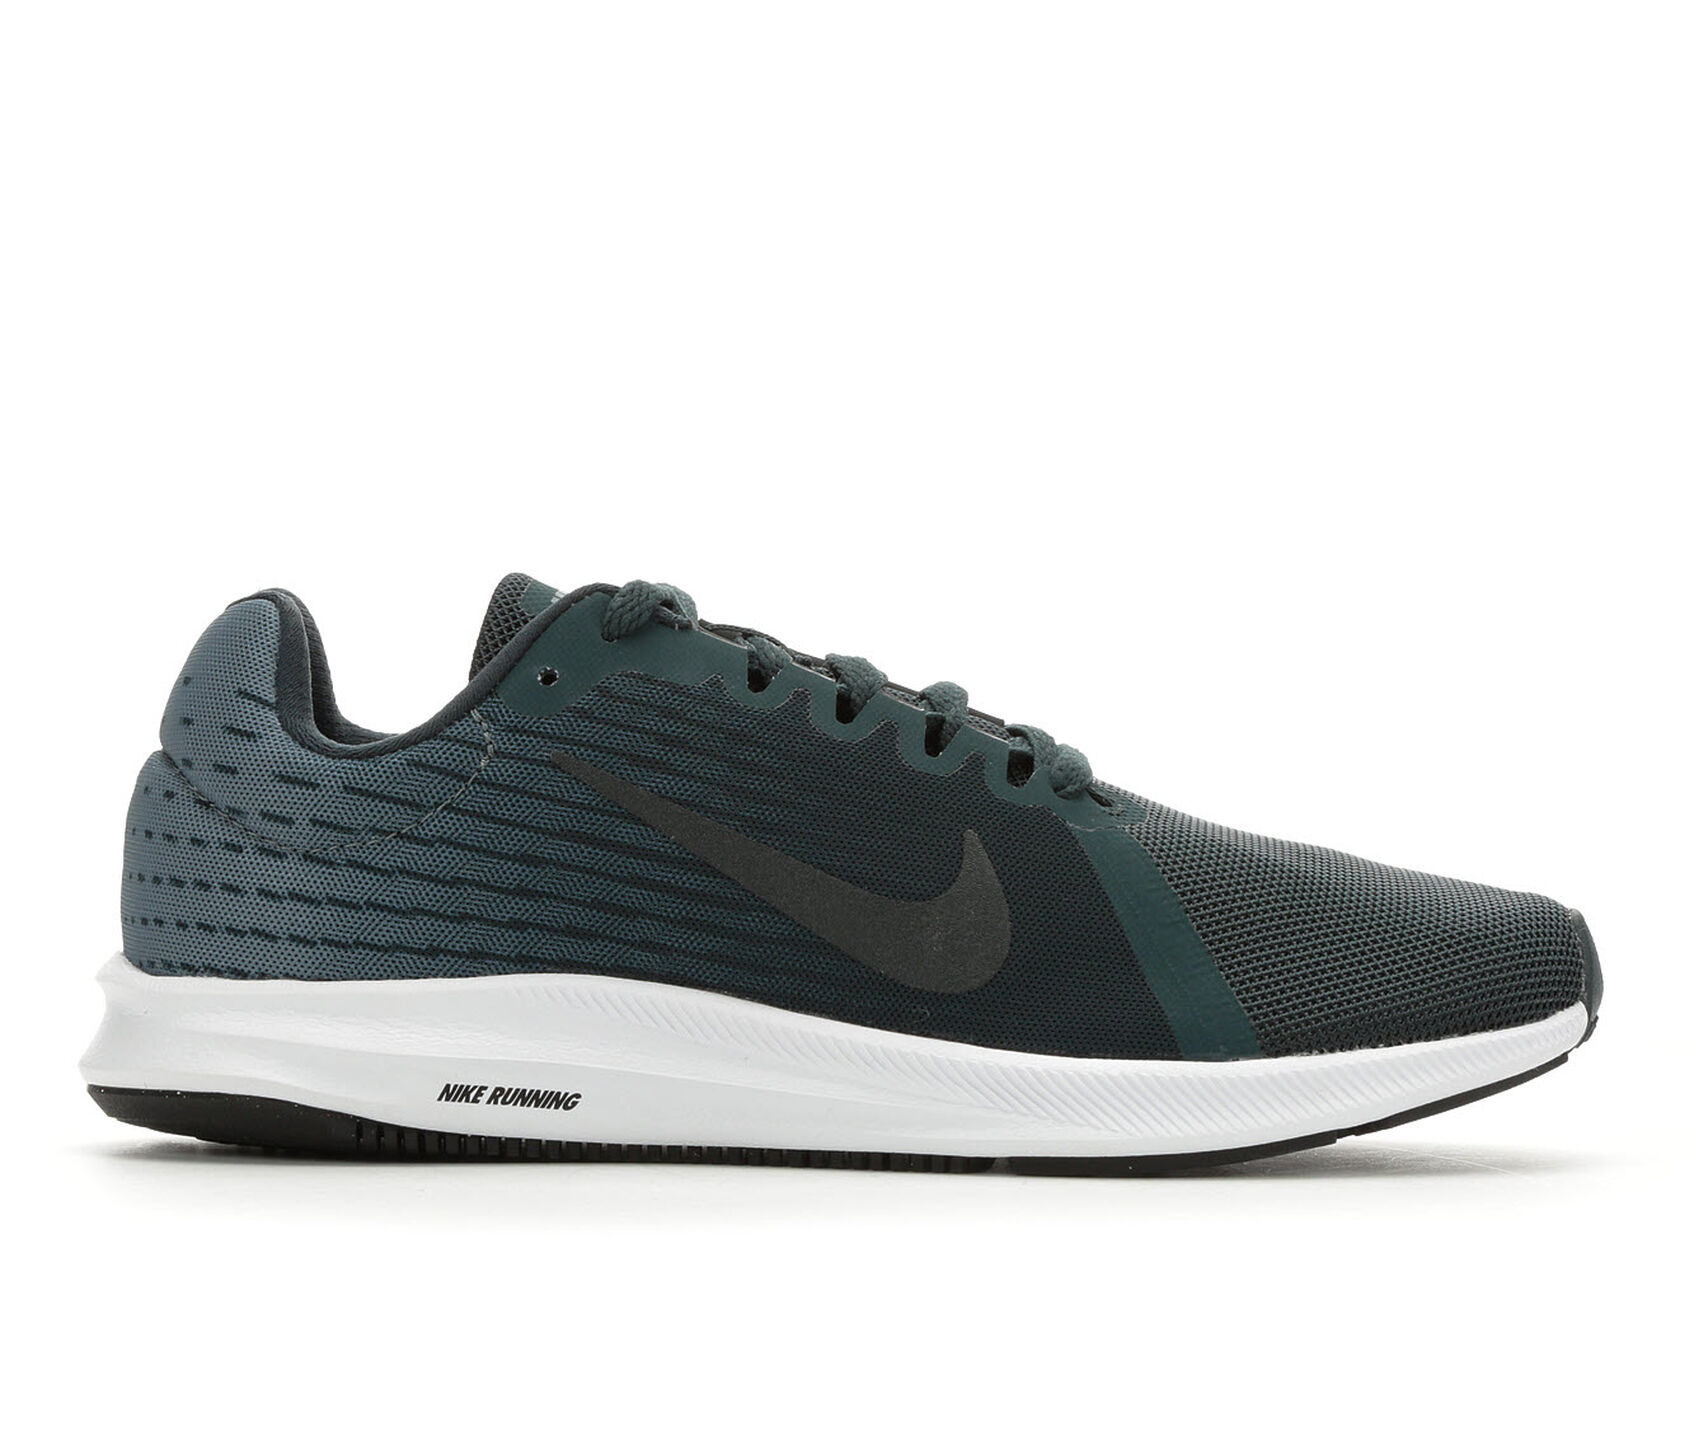 0fa340112960b4 ... Nike Downshifter 8 Running Shoes. Previous